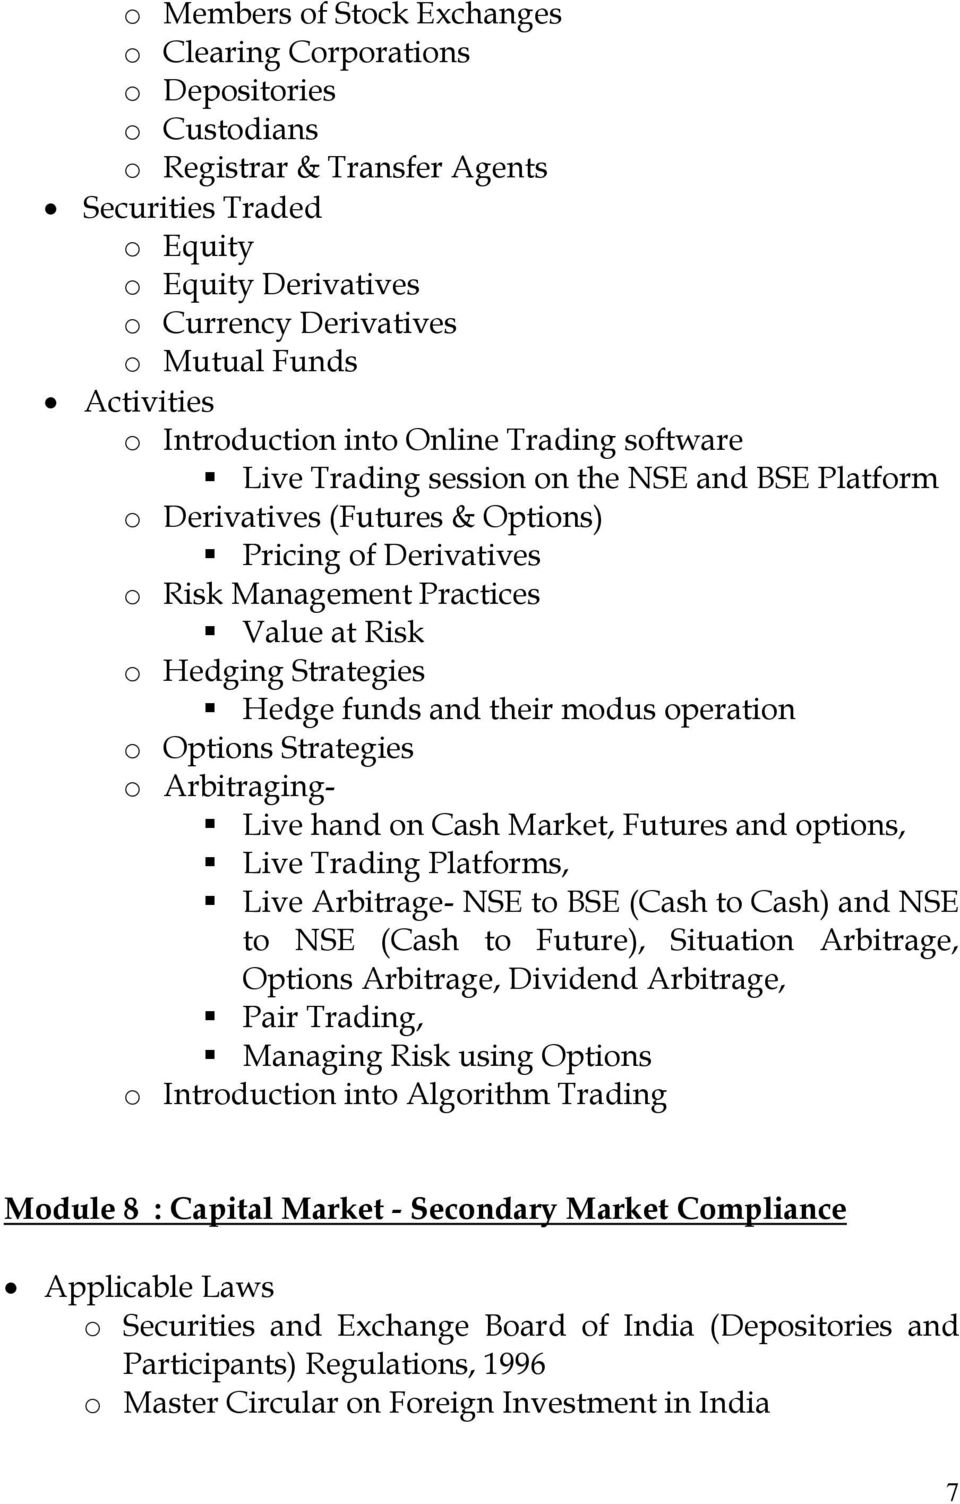 Risk o Hedging Strategies Hedge funds and their modus operation o Options Strategies o Arbitraging- Live hand on Cash Market, Futures and options, Live Trading Platforms, Live Arbitrage- NSE to BSE